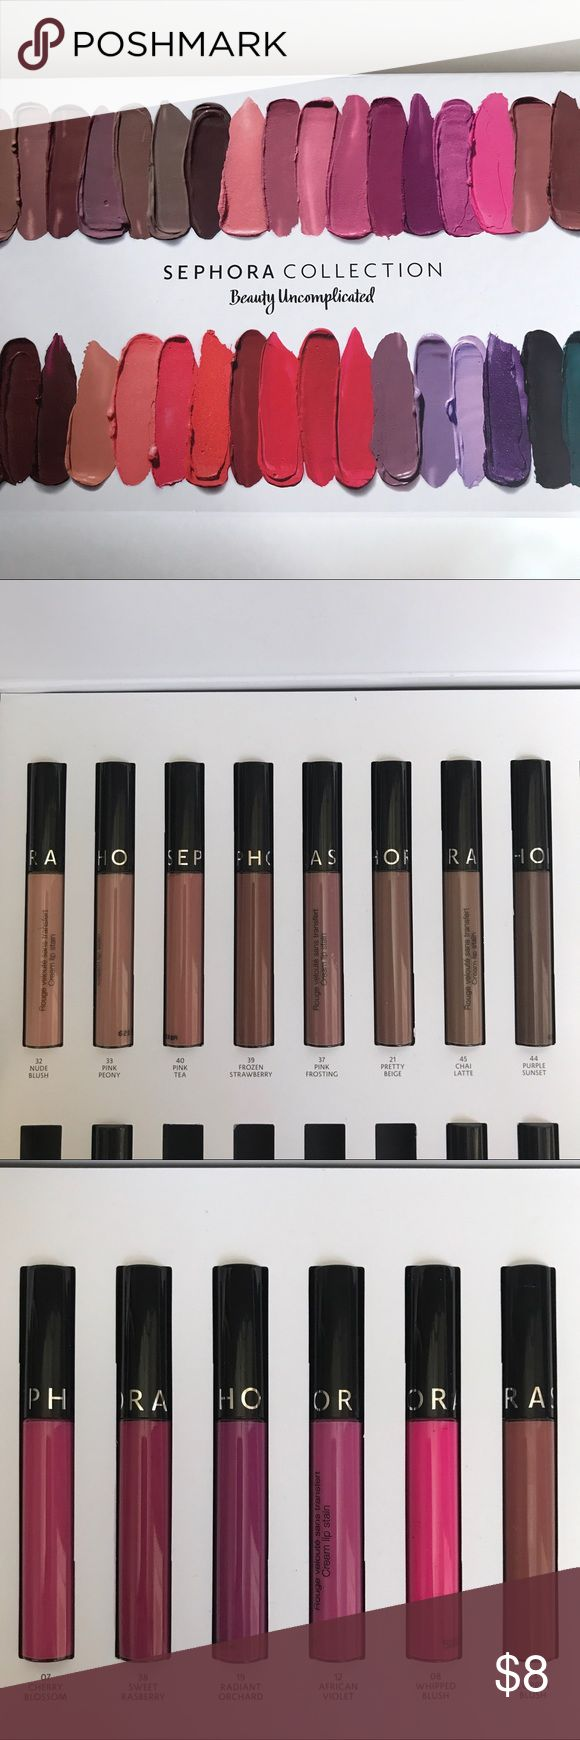 Sephora Cream Lip Stain Sephora Lip Cream Stain lip colors. I only have the colors photographed above available. Please let me know what color(s) you are interested in and I can make a separate listing for you! 3 for $20 or $8 each. ❌ colors no longer available: pretty beige ❌ Sephora Makeup Lipstick